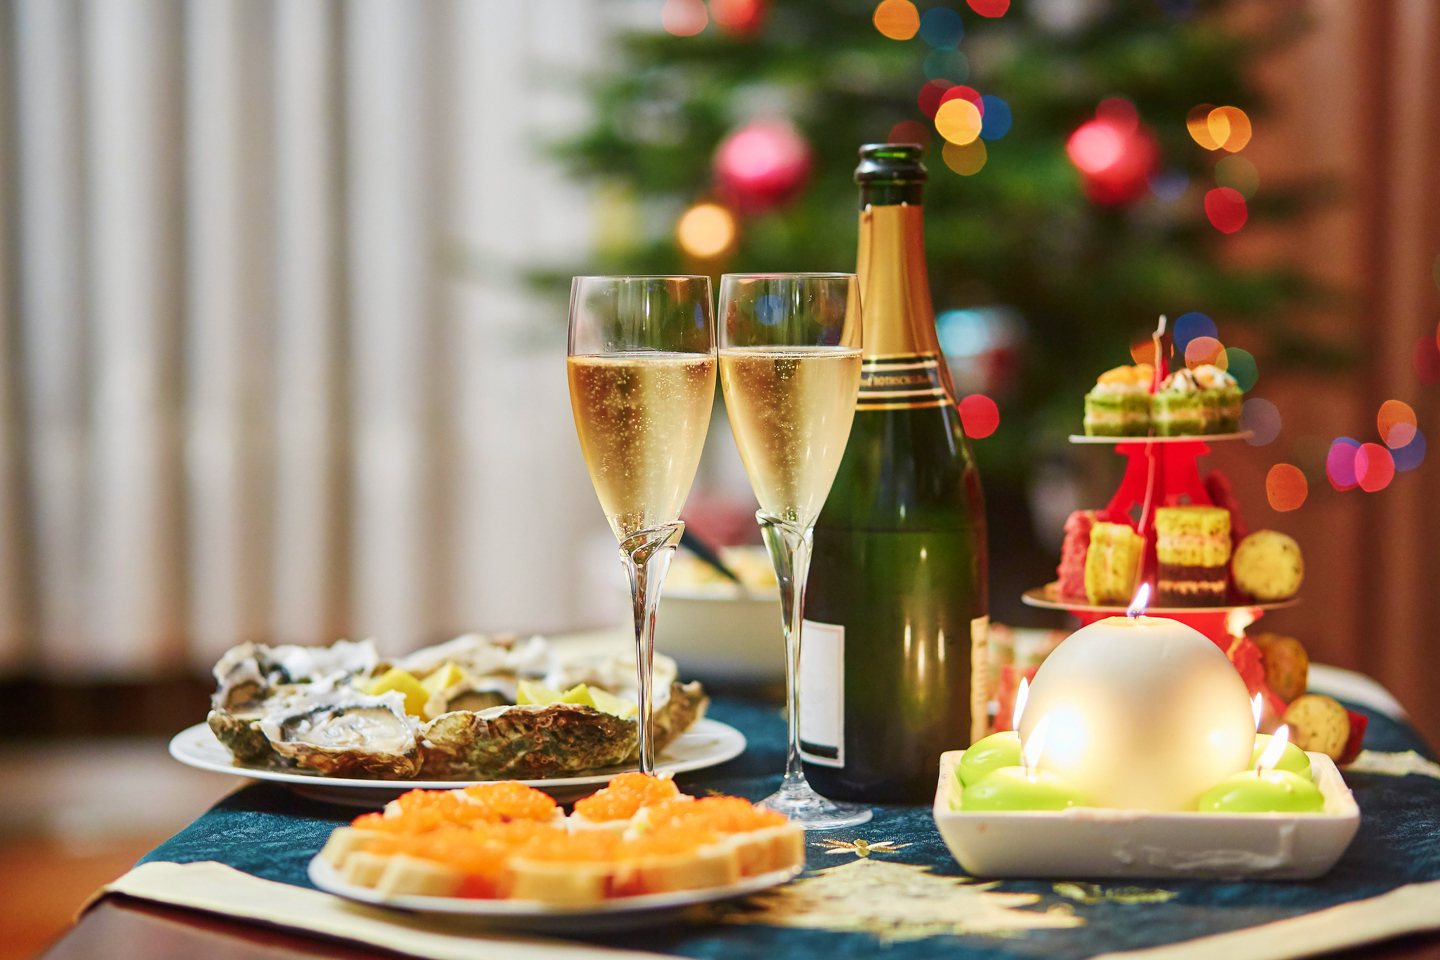 http://Traditional%20Christmas%20Dishes%20French%20Dreamstime%20L%2076973274